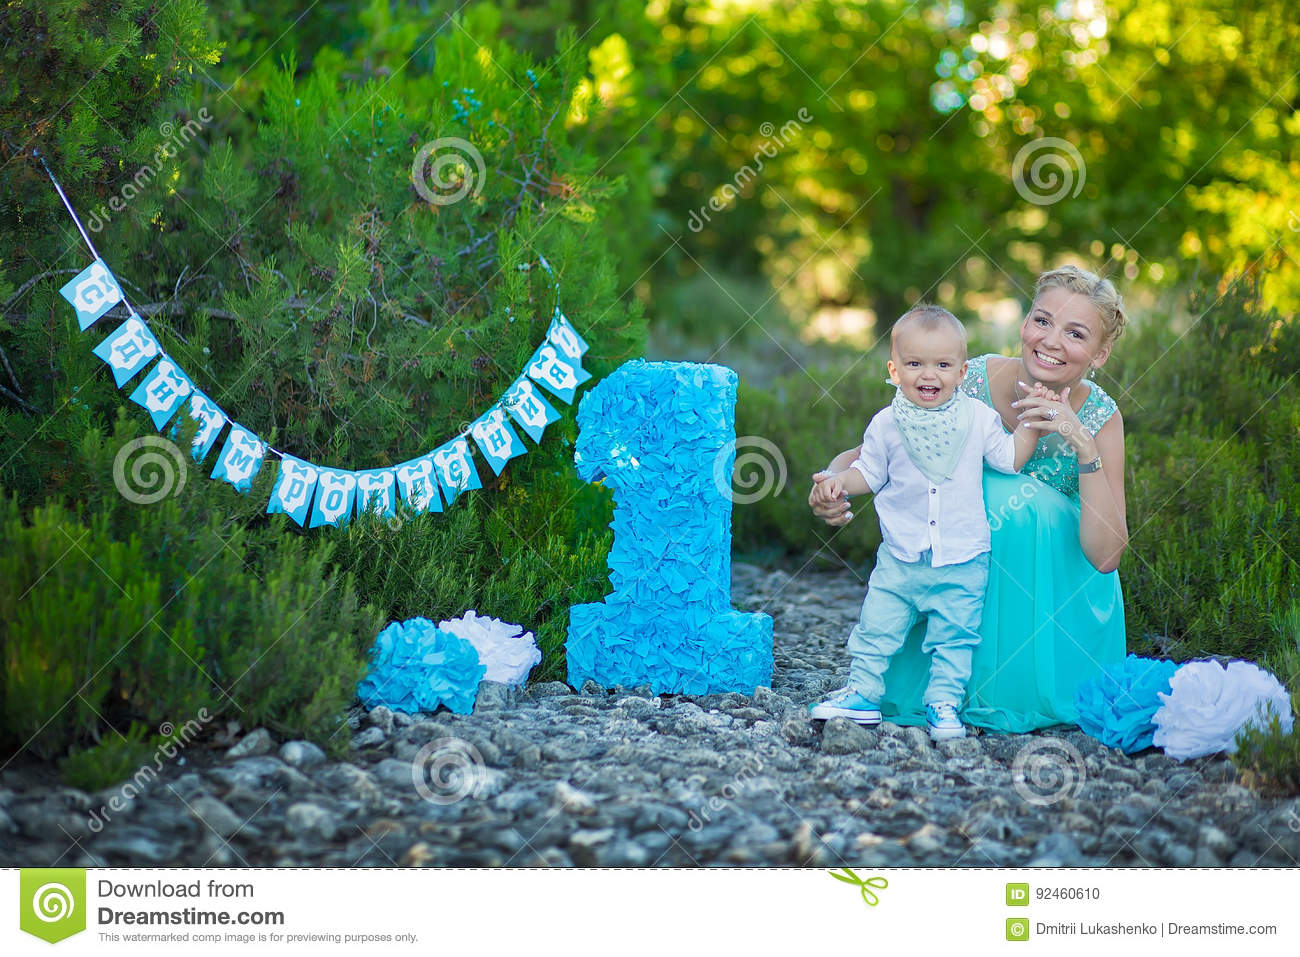 Download Beautifull Mother Lady Mom In Stylish Blue Dress Together With Her Son And Number One